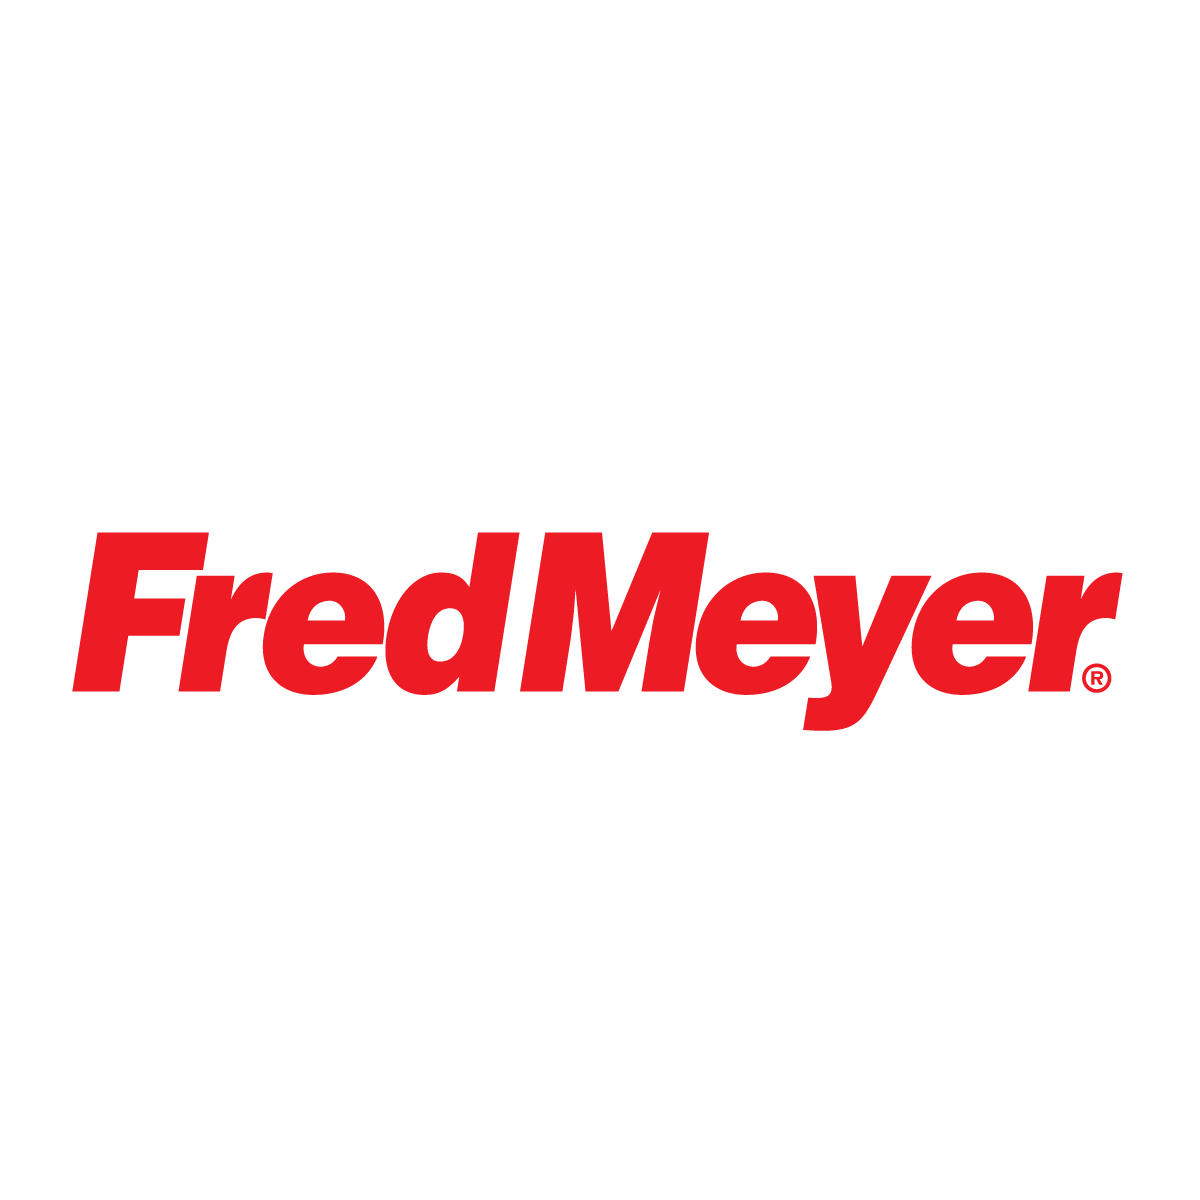 Fred_Meyer - Fresh Alliance Website-01.png